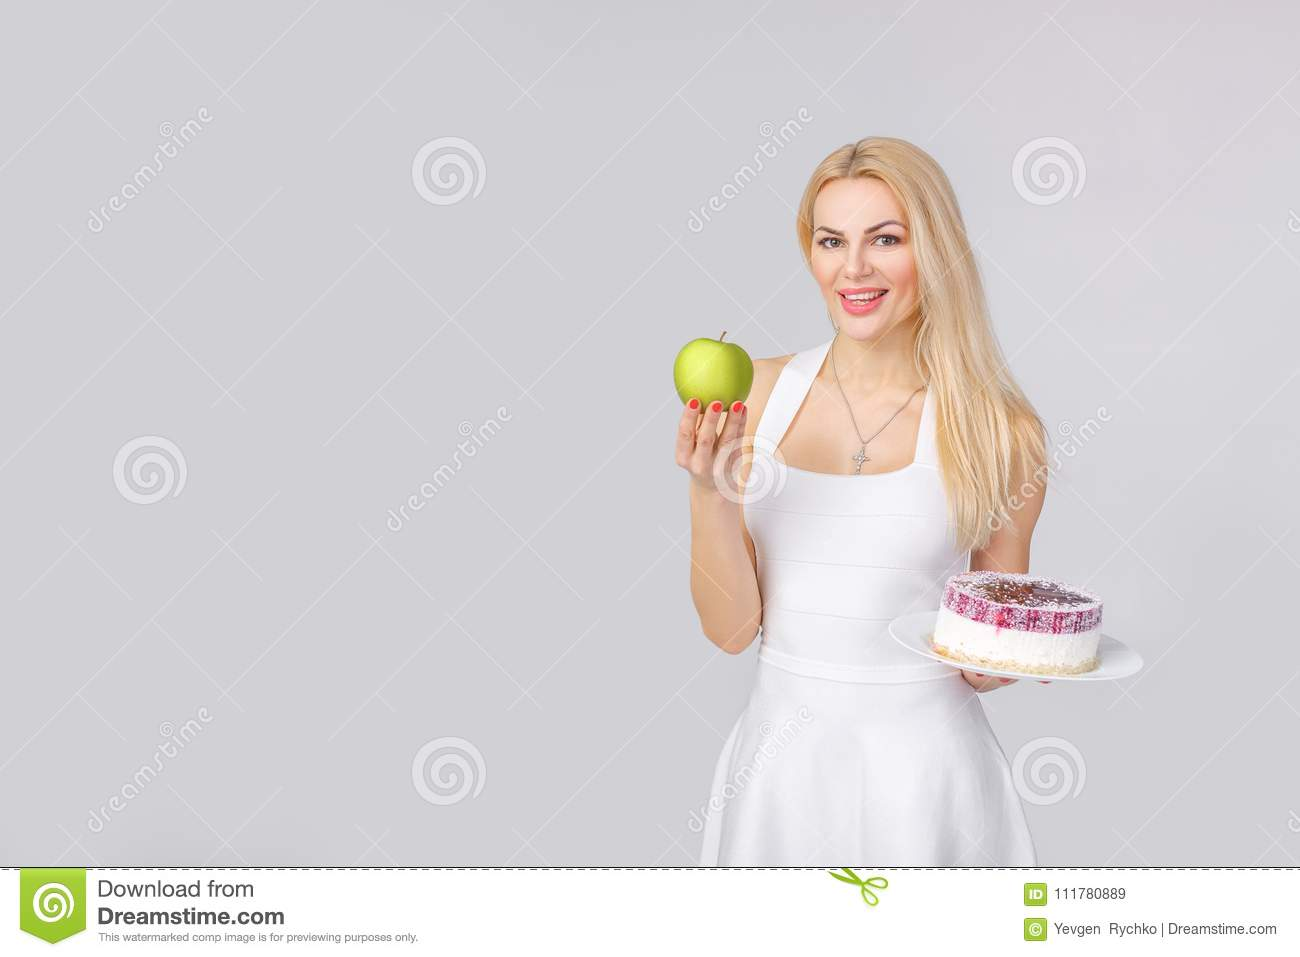 Woman chooses between cake and apple